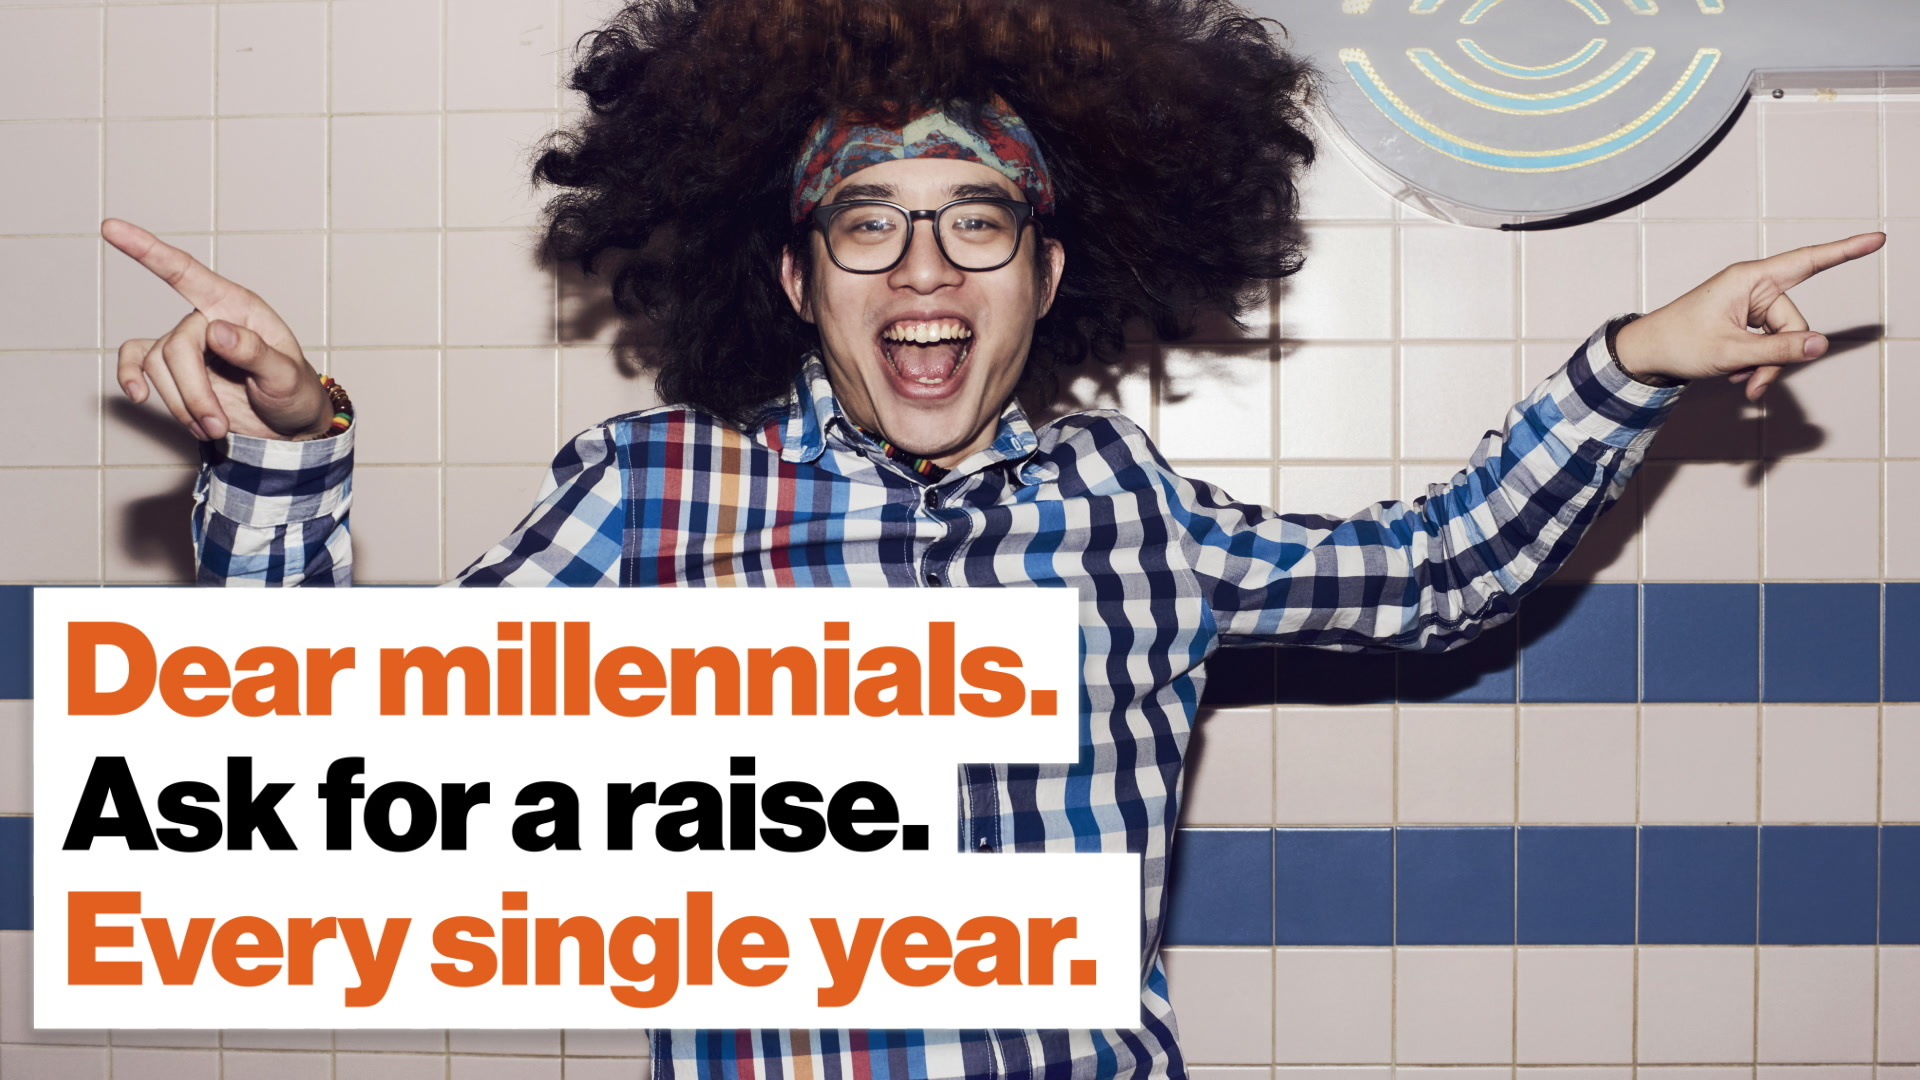 How to ask for a raise as a millennial